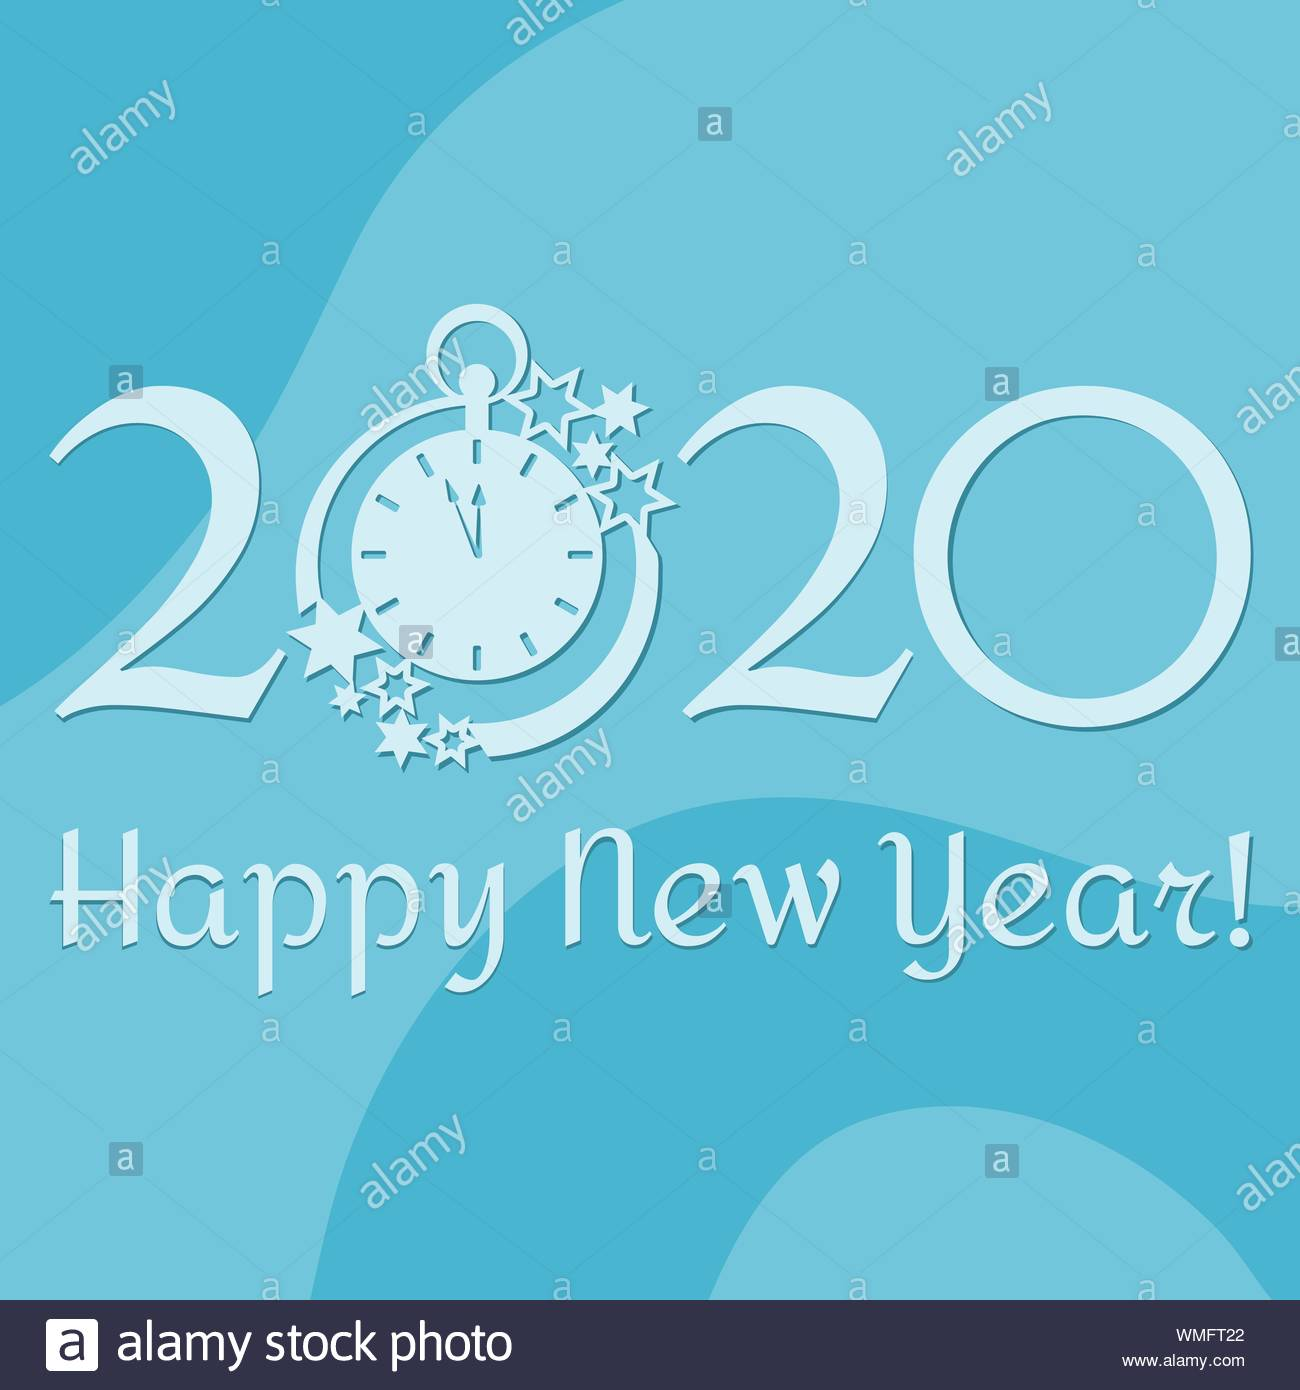 1300x1390 - Happy New Year Backgrounds 44